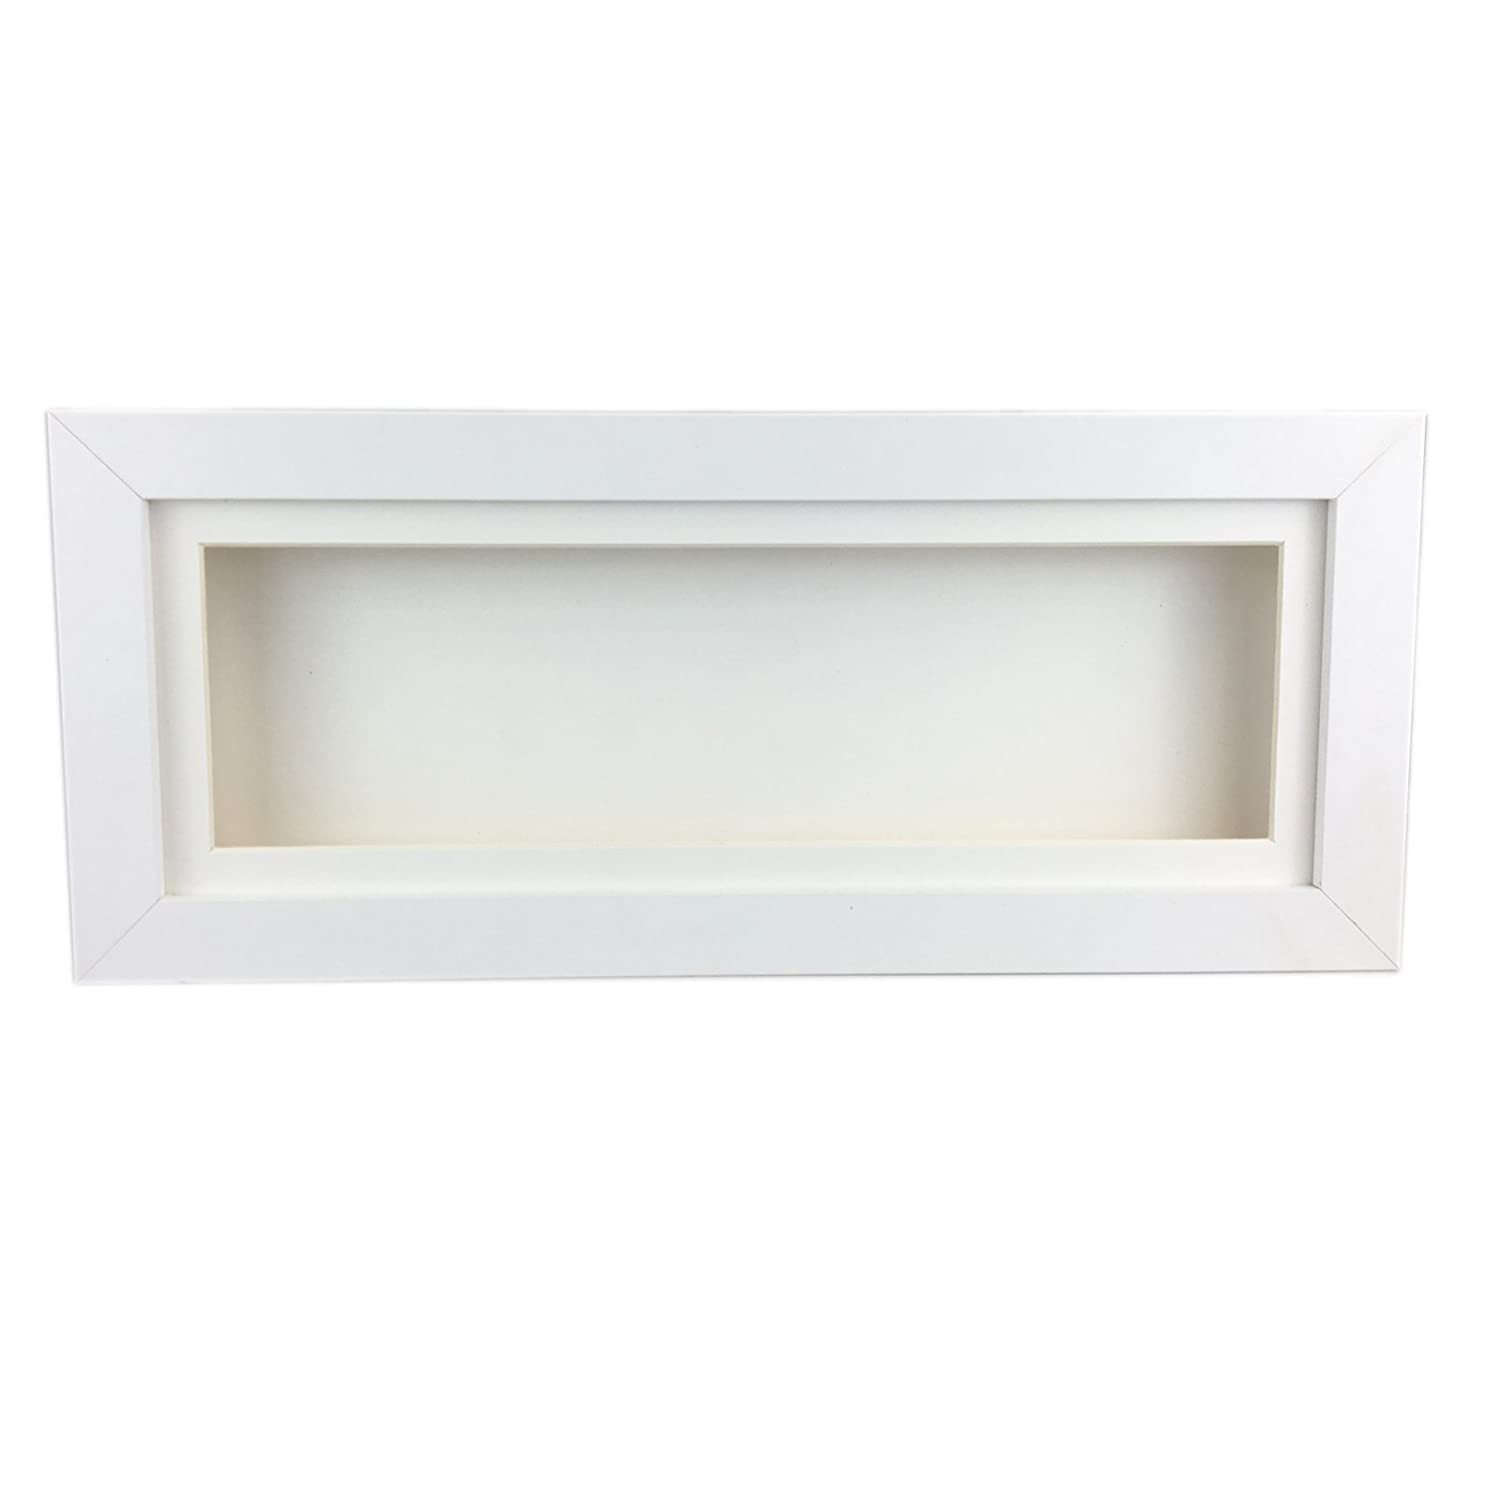 Deep shadow box tall display frame, 20 x 4 for medals, spoons ...